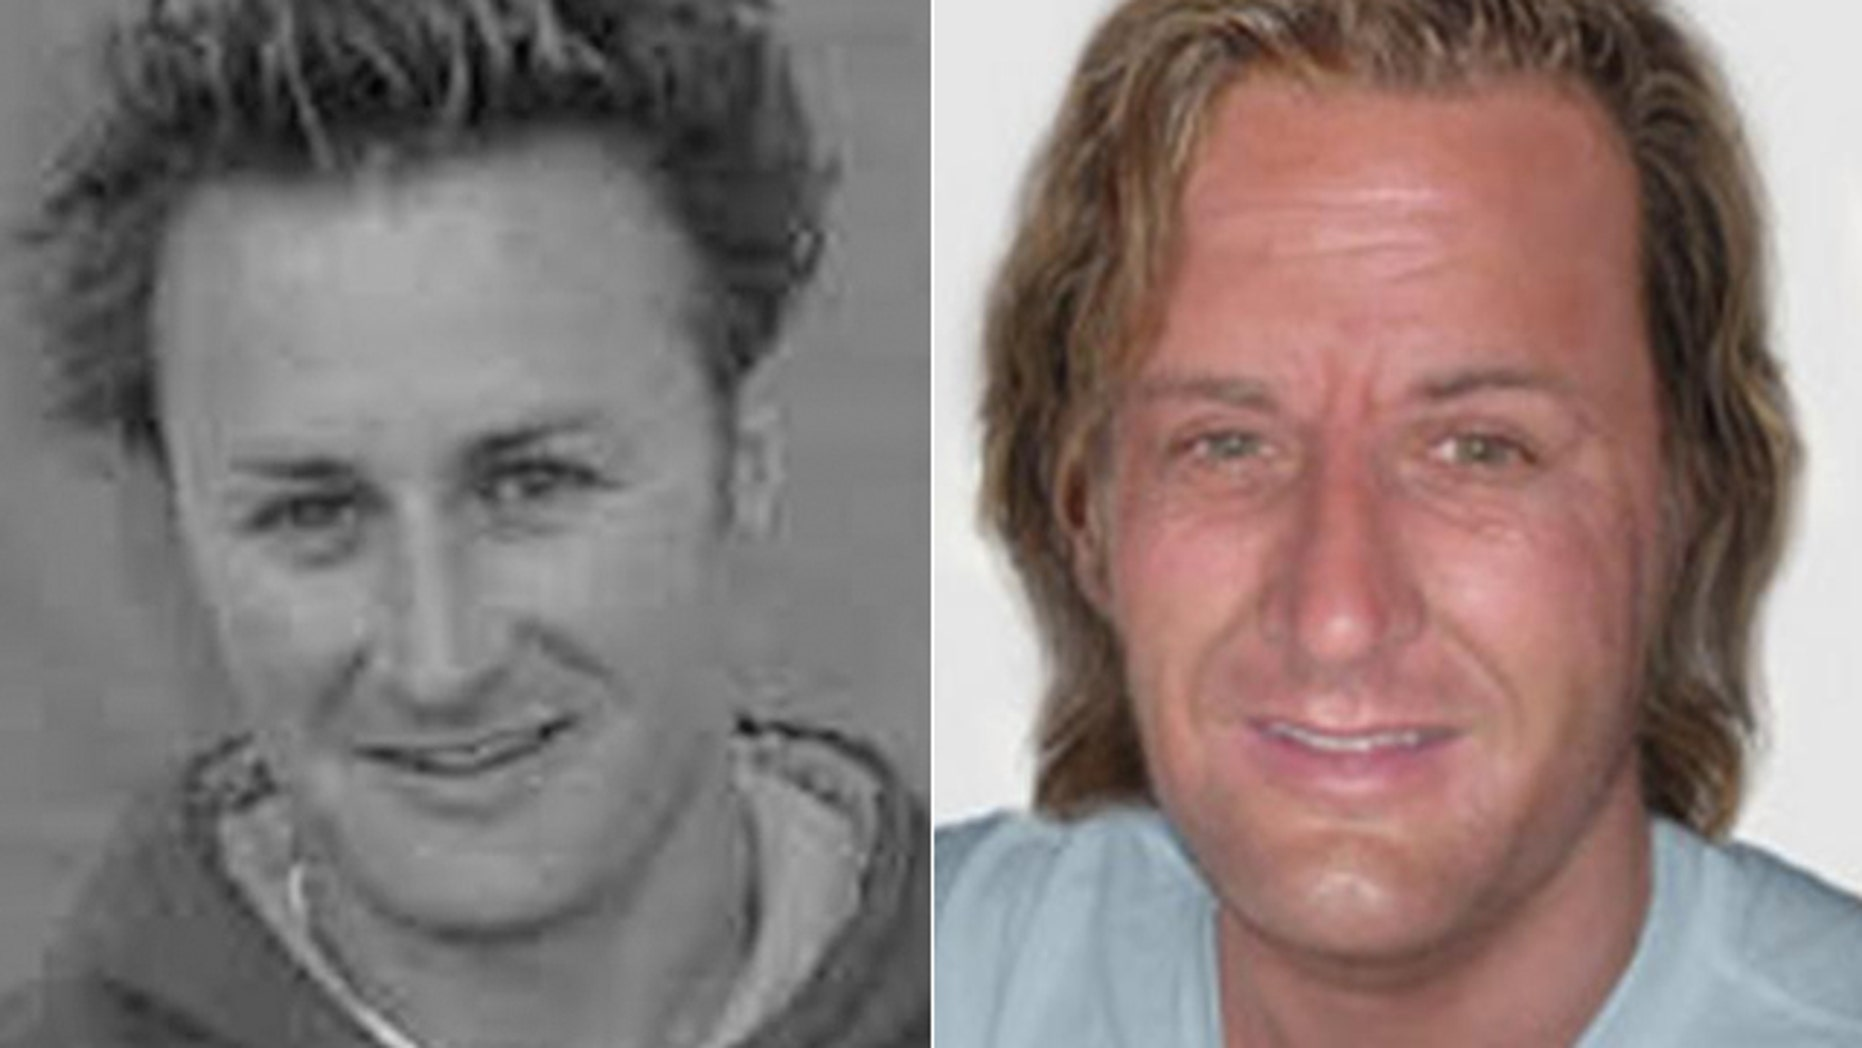 This combination photo shows Jason Brown, left, and an age-enhanced photo.